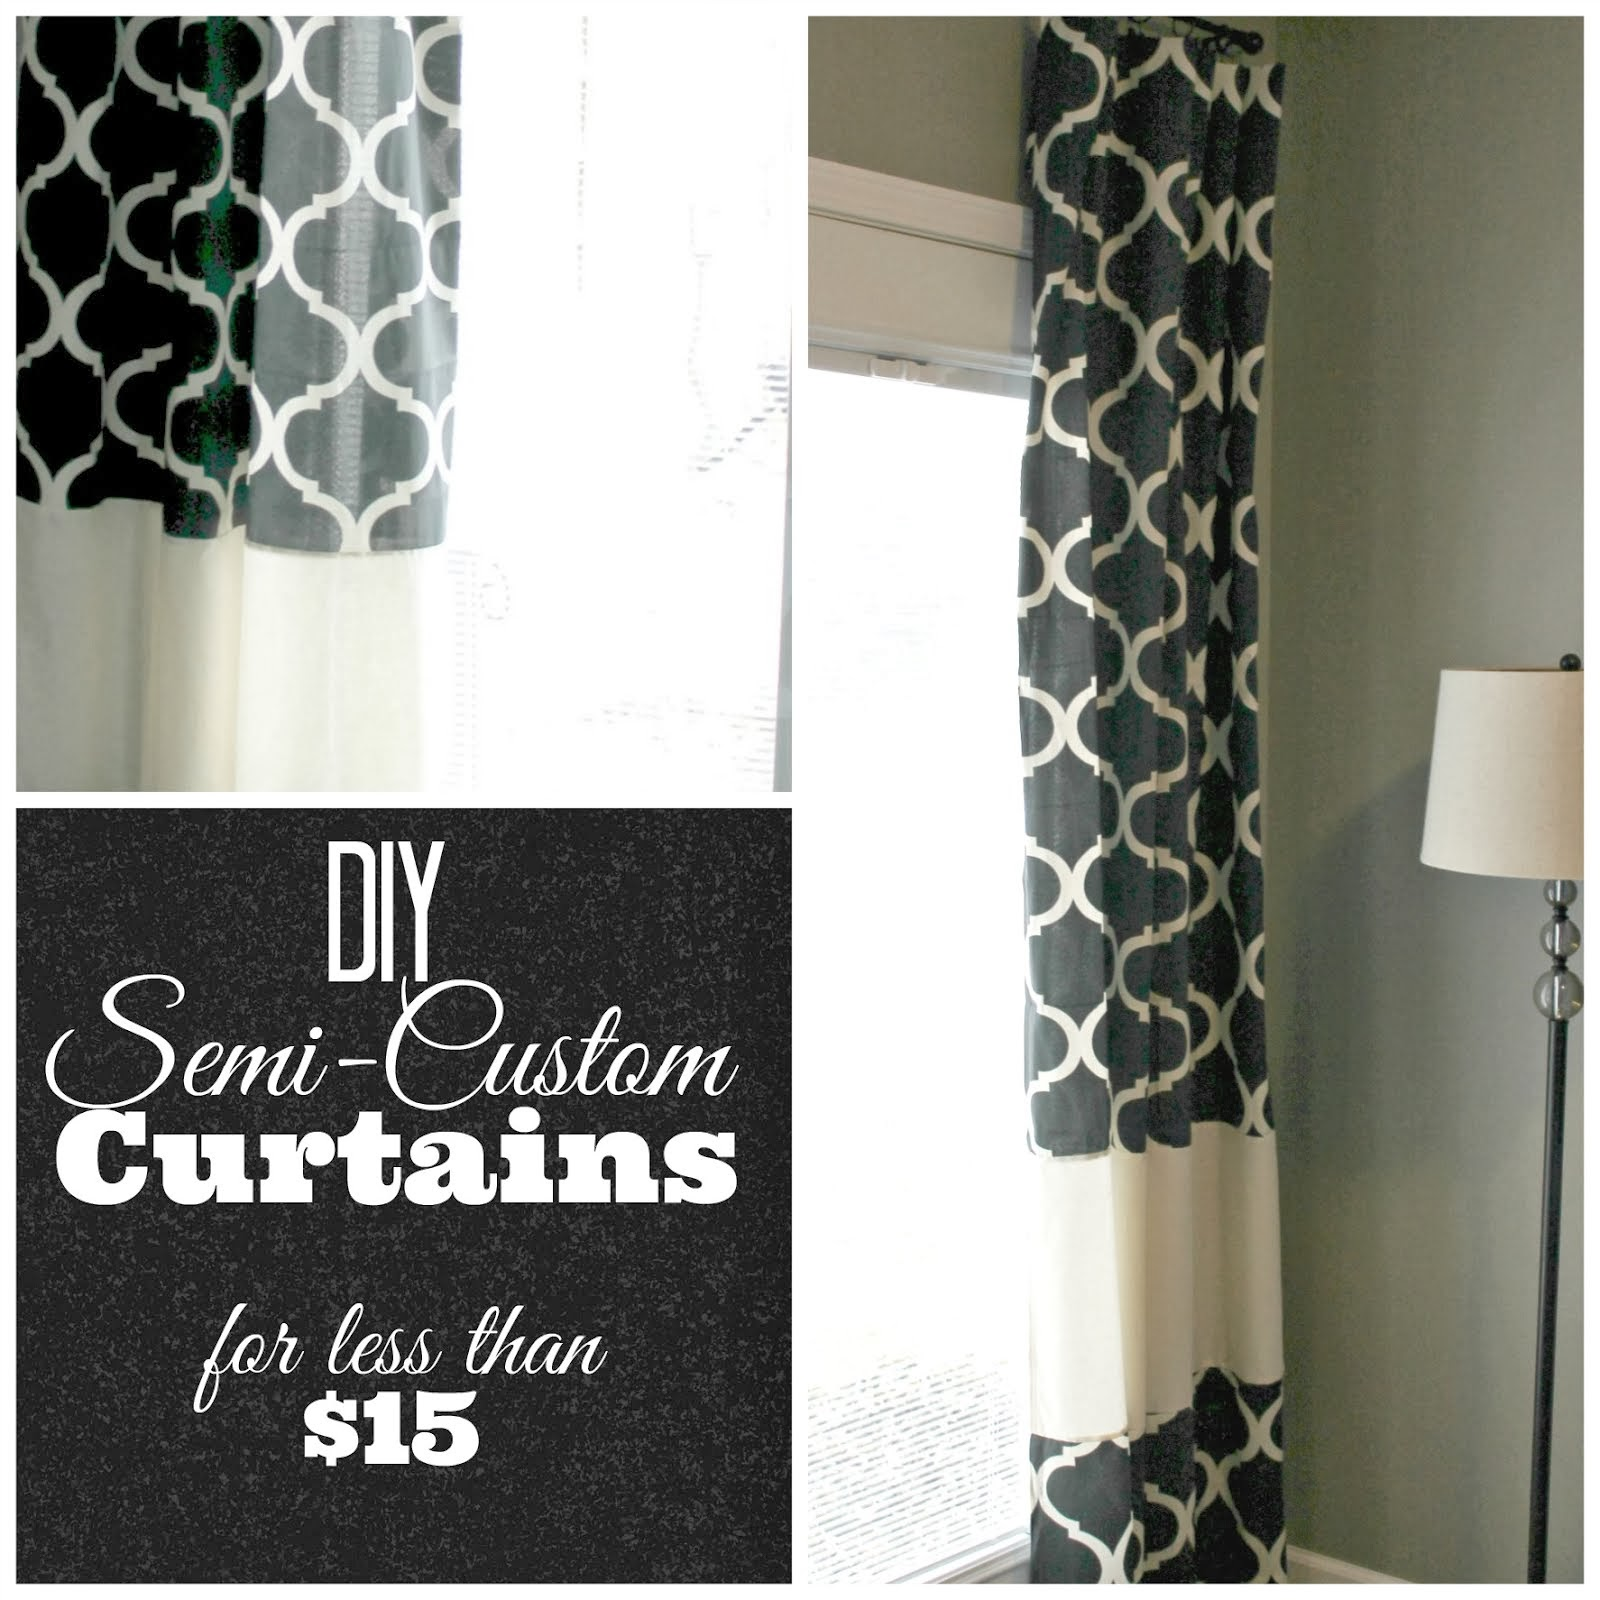 DIY Semi-Custom Curtains